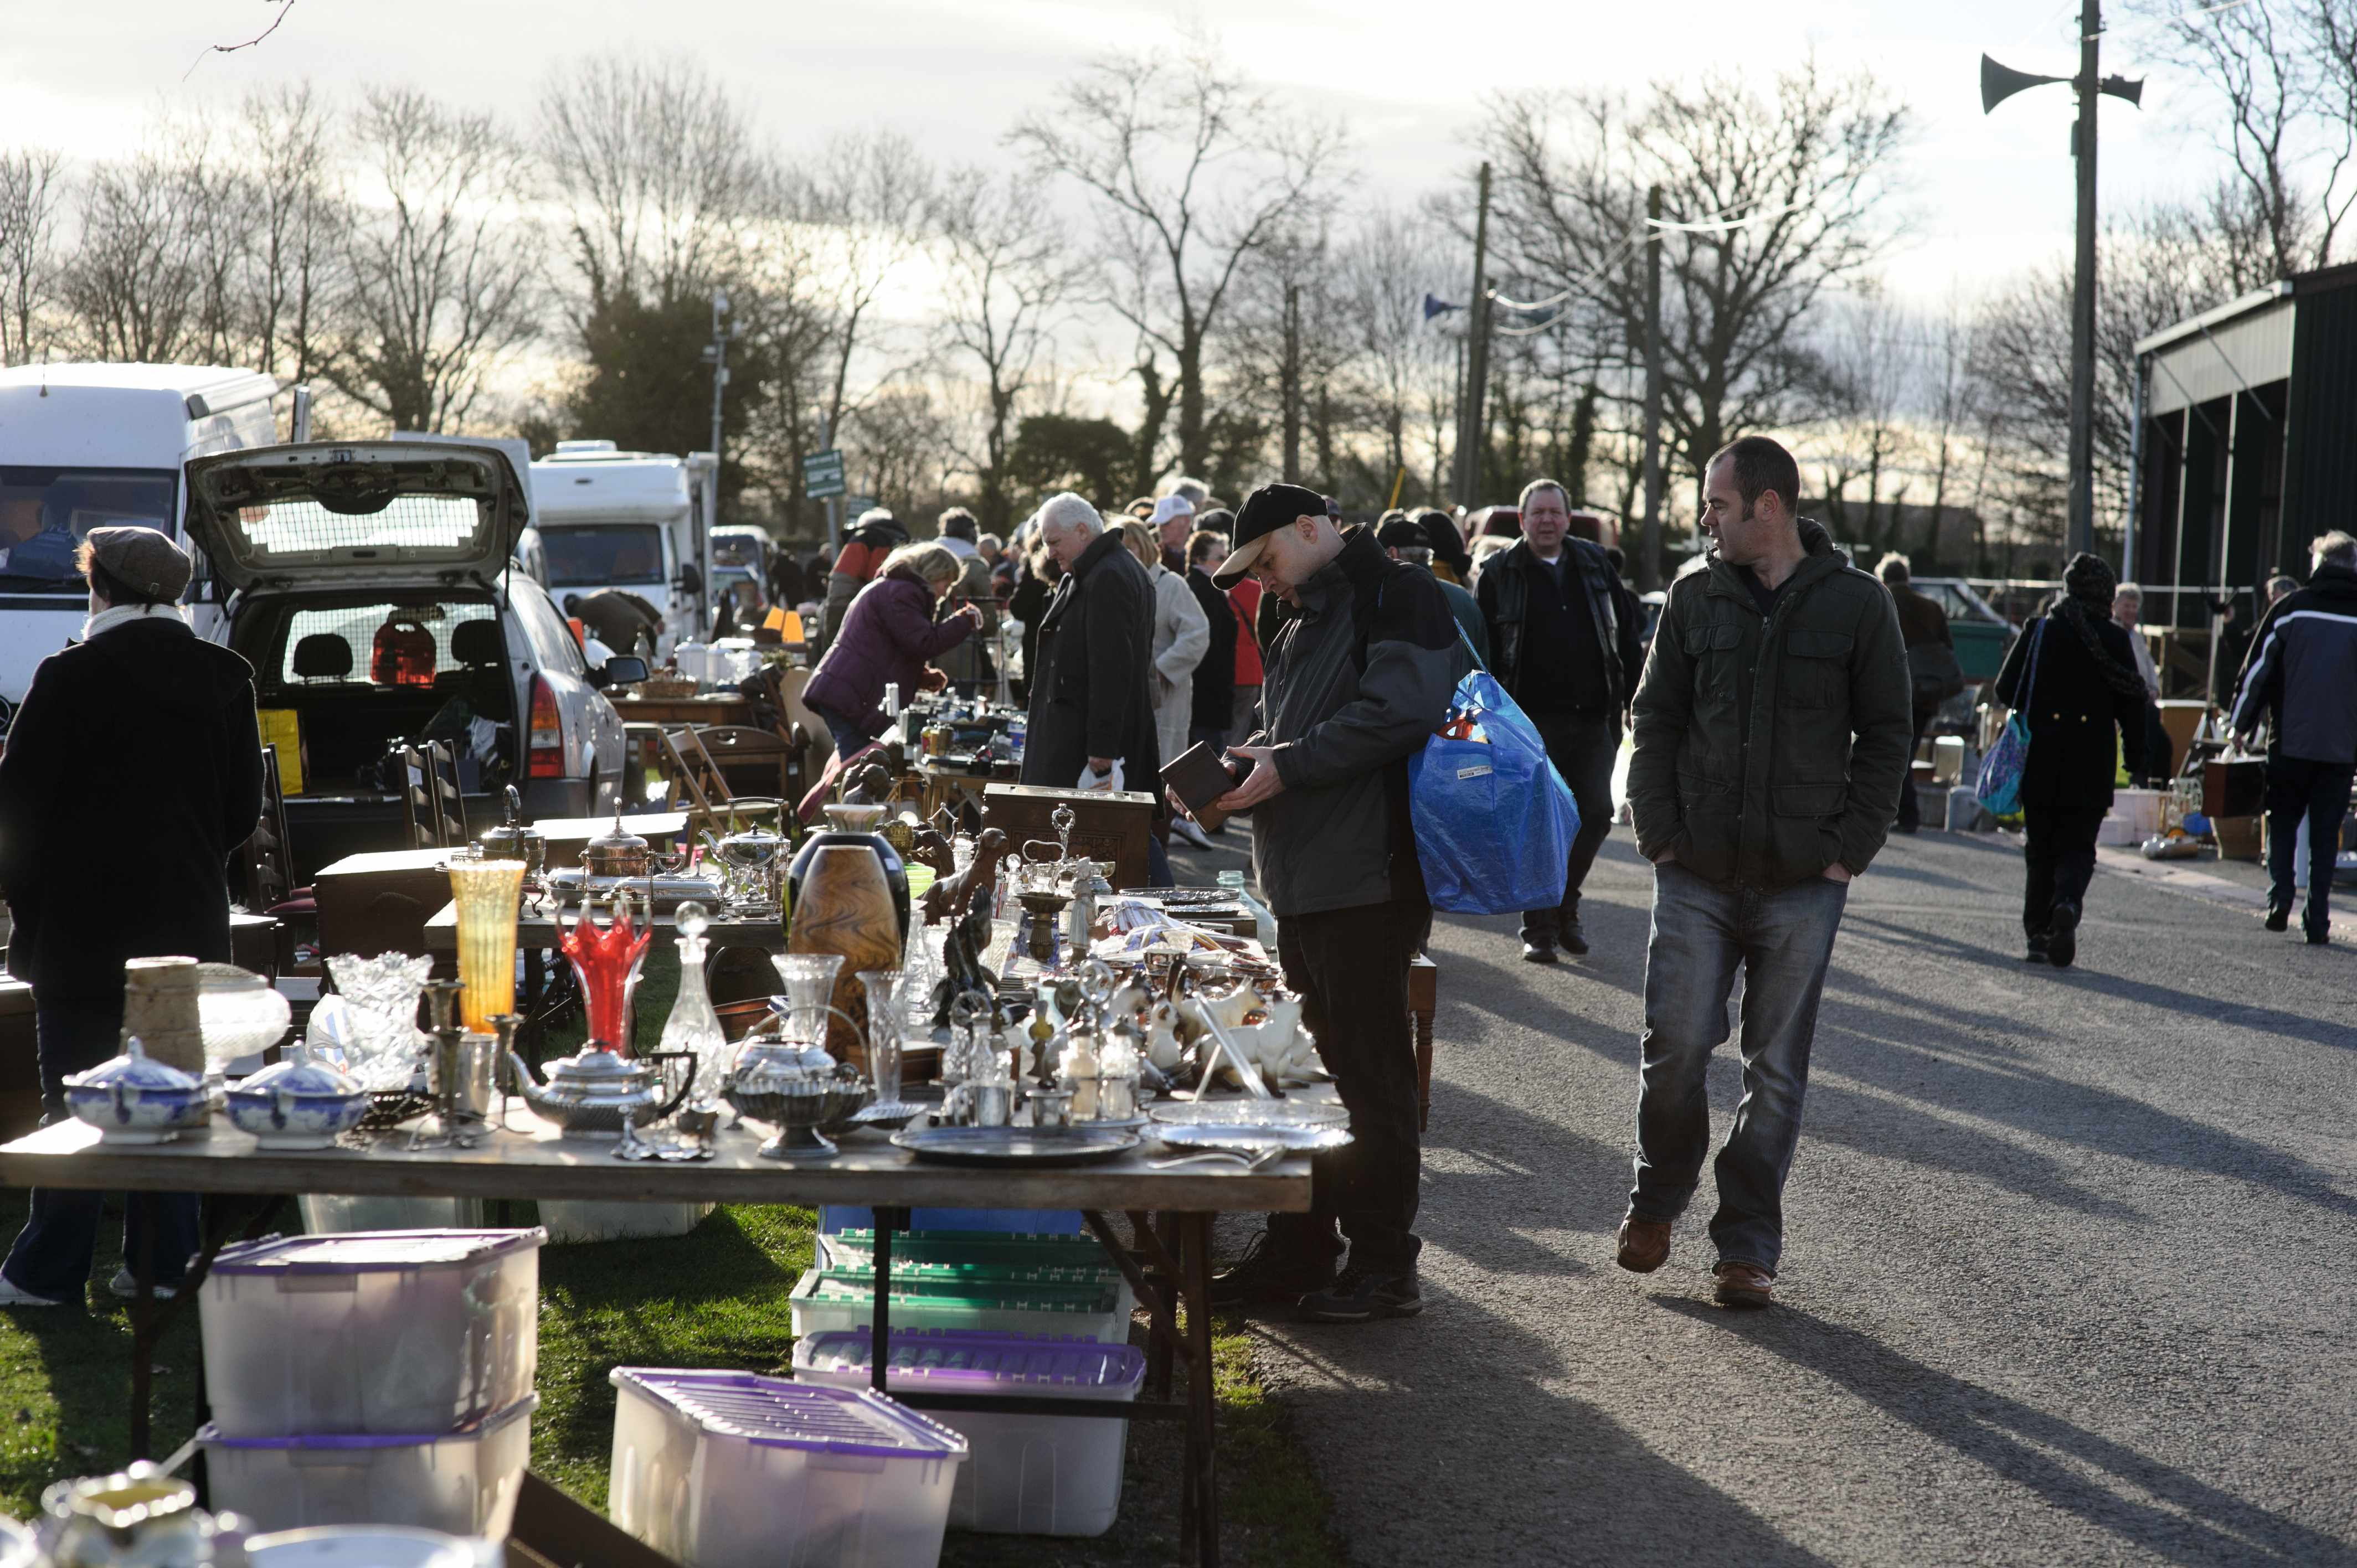 Antiques-hunters browse a stall of small curios at the Malvern Flea & Collectors fair